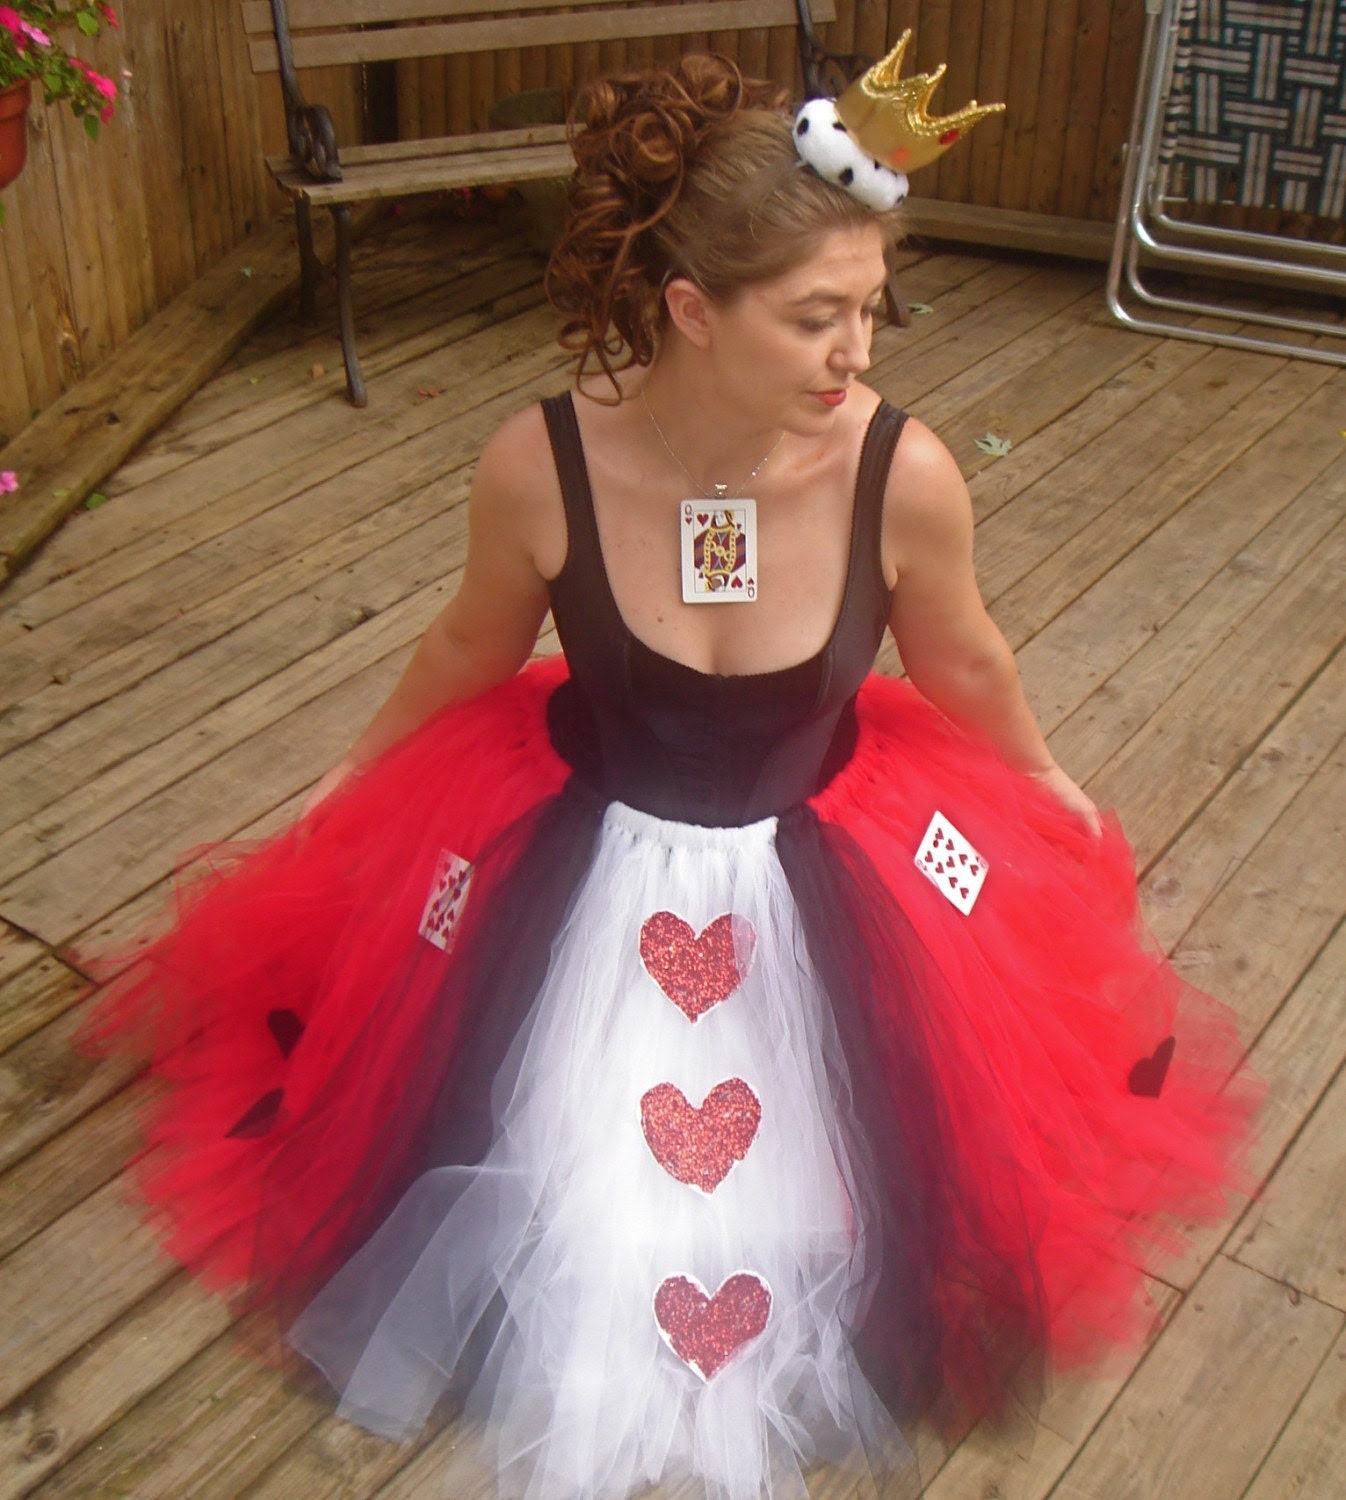 Queen of Hearts  Adult Boutique Tutu Skirt Costume